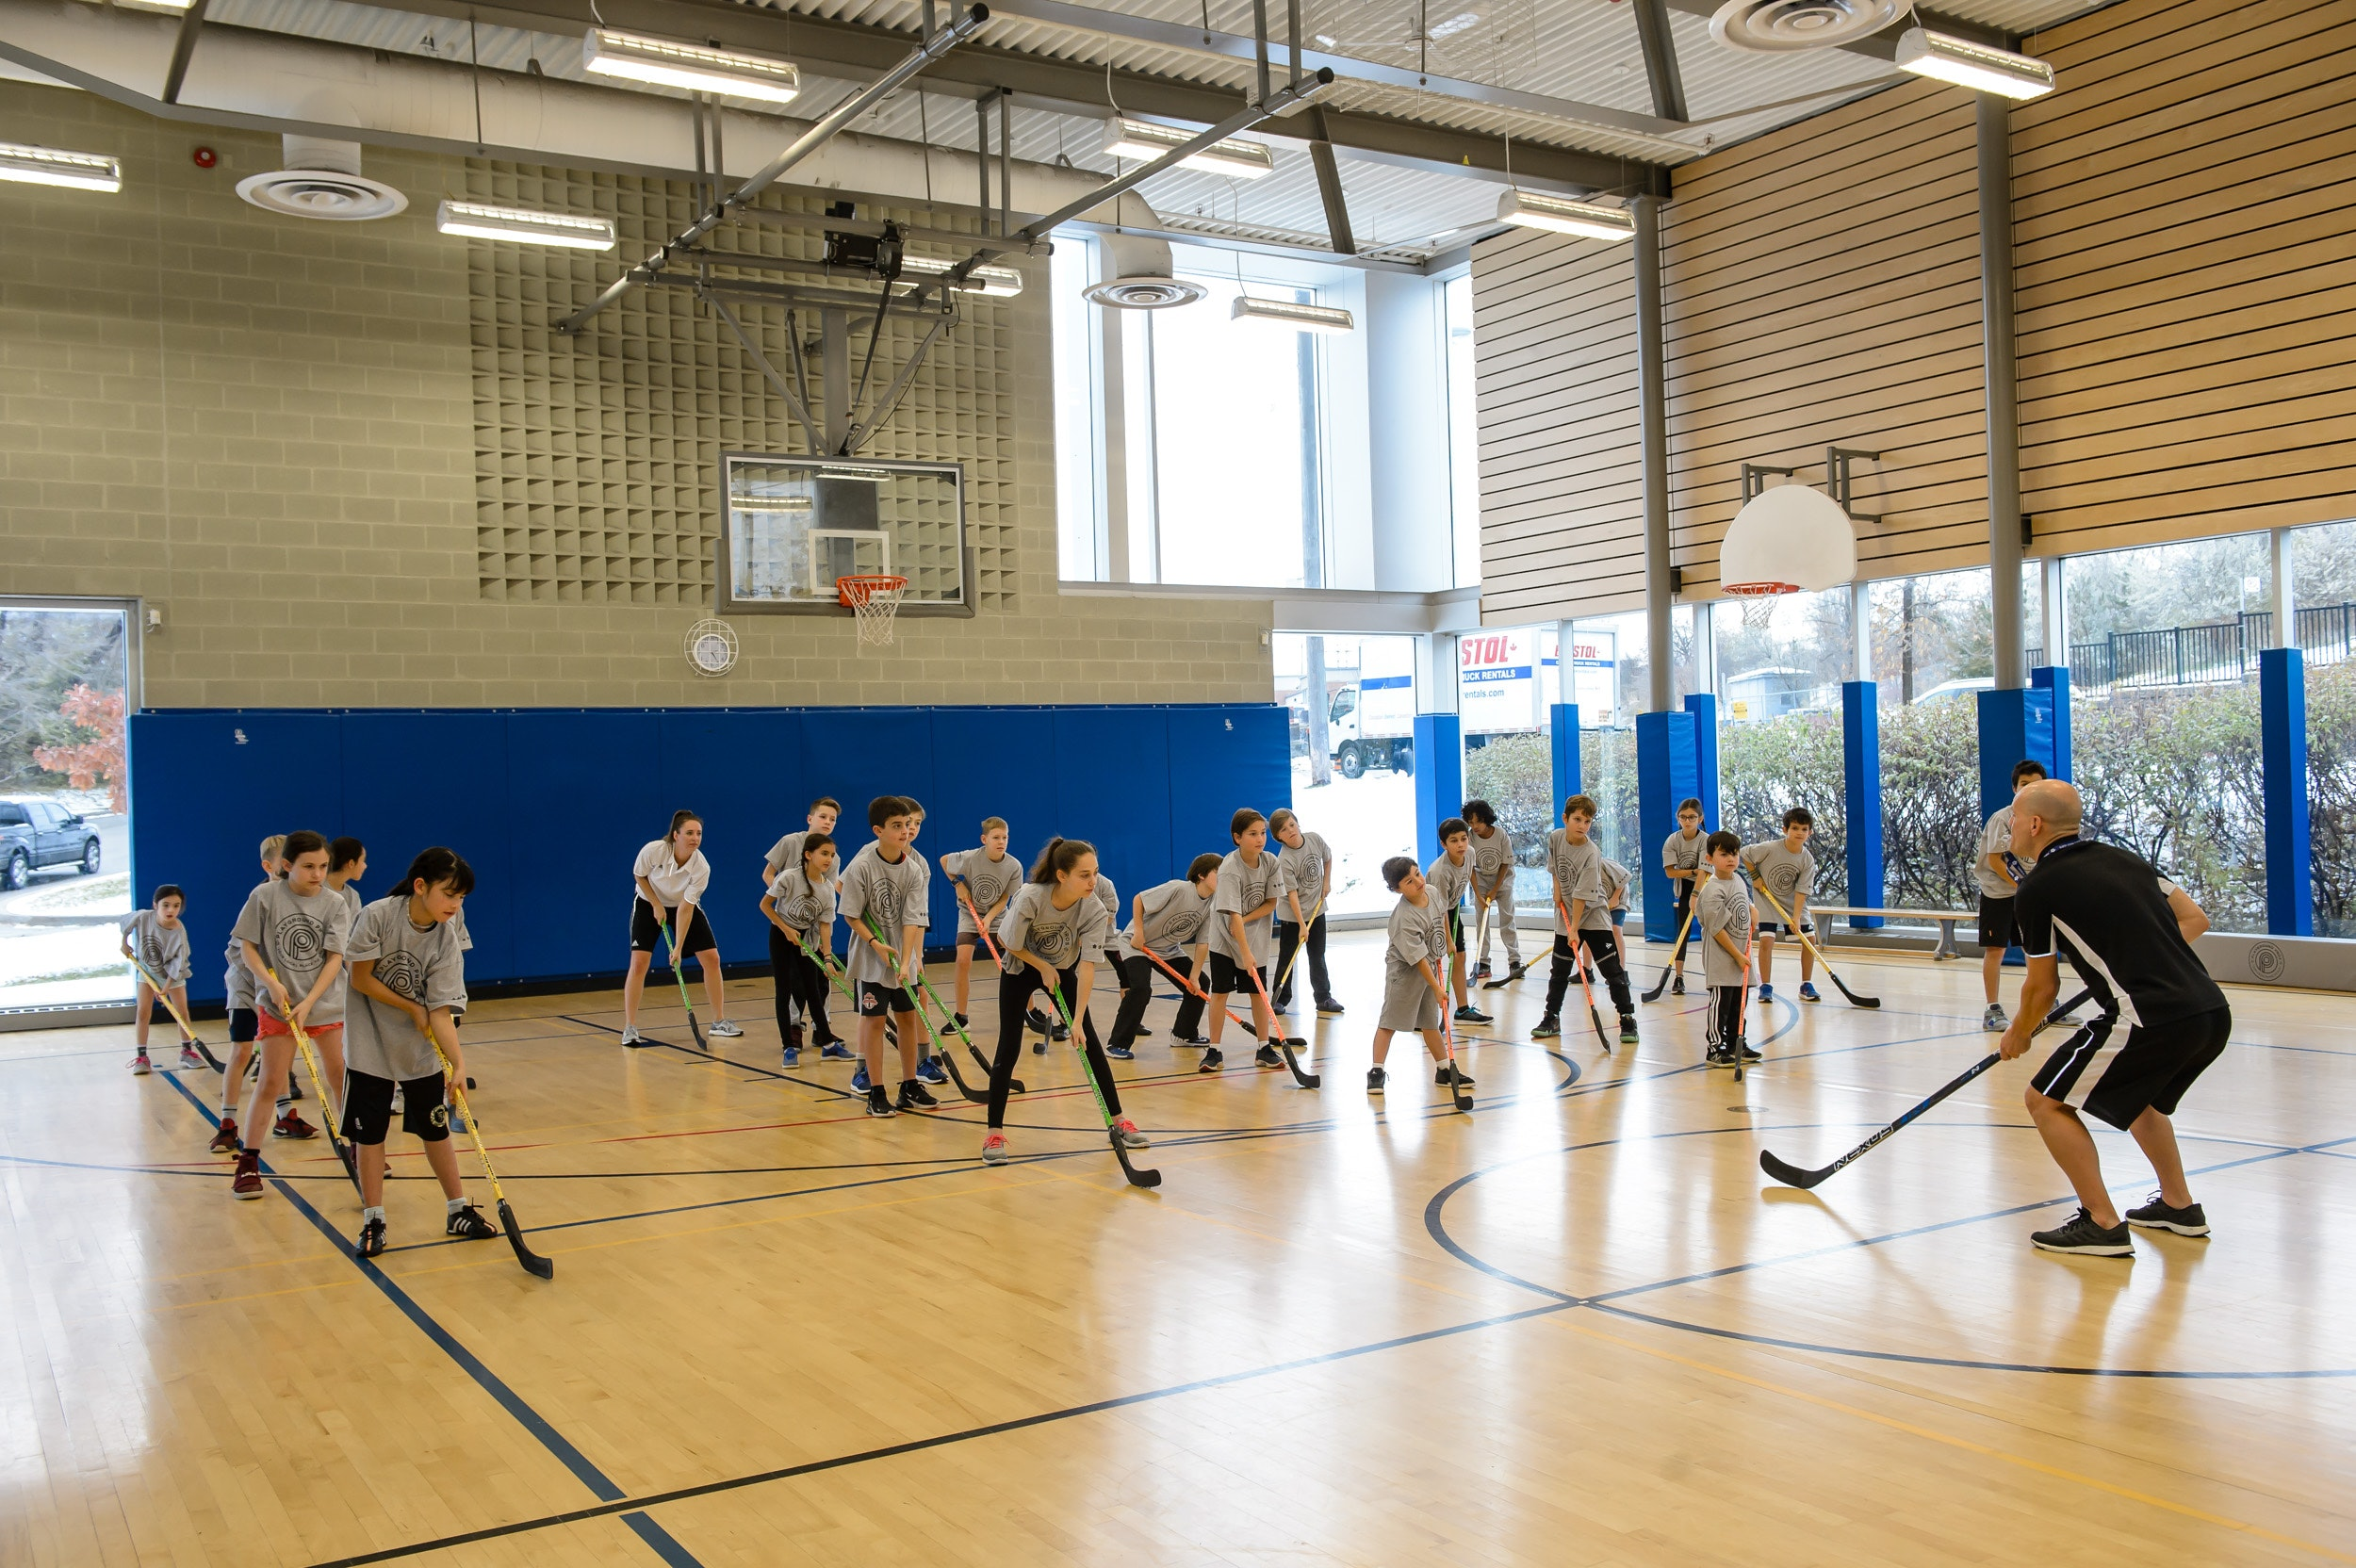 Dates locations fan playground pros sports camps in the greater toronto area.jpg?ixlib=rails 2.1